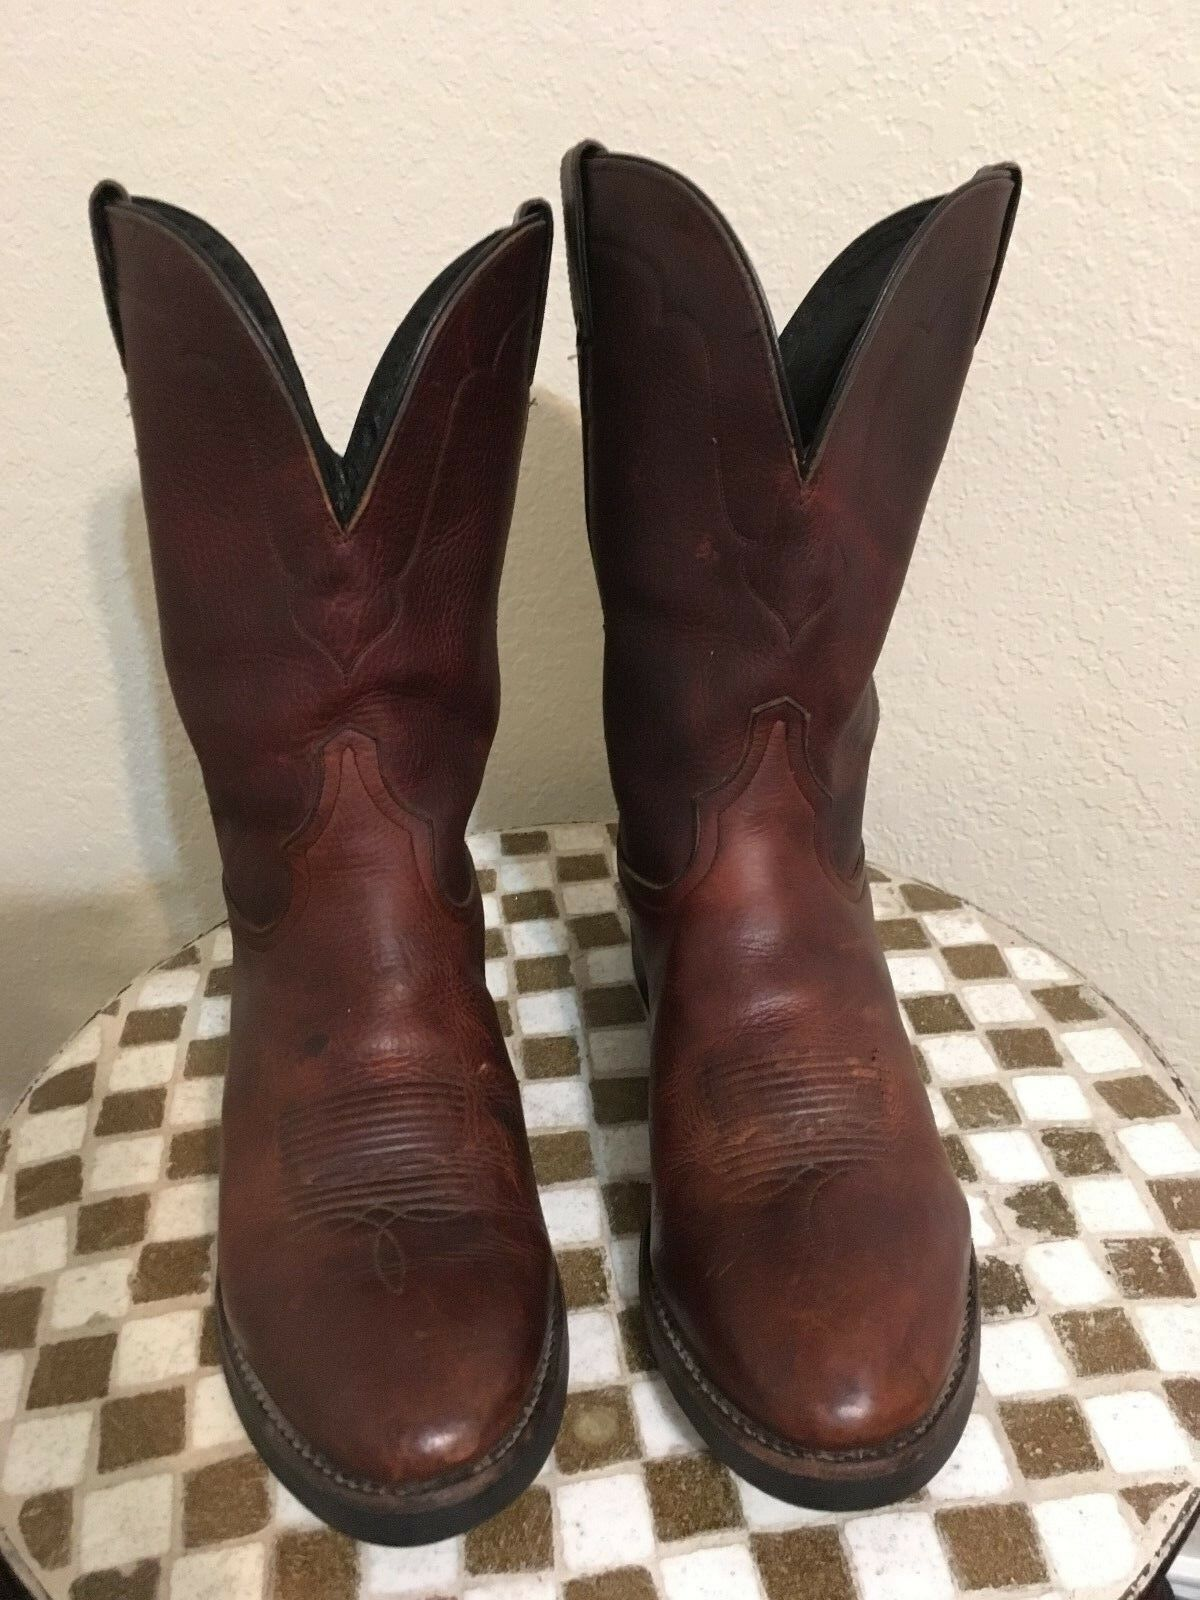 BROWN TONY LAMA USA DISTRESSED WESTERN TRUCKER COWBOY BIKER BOOTS 11 D